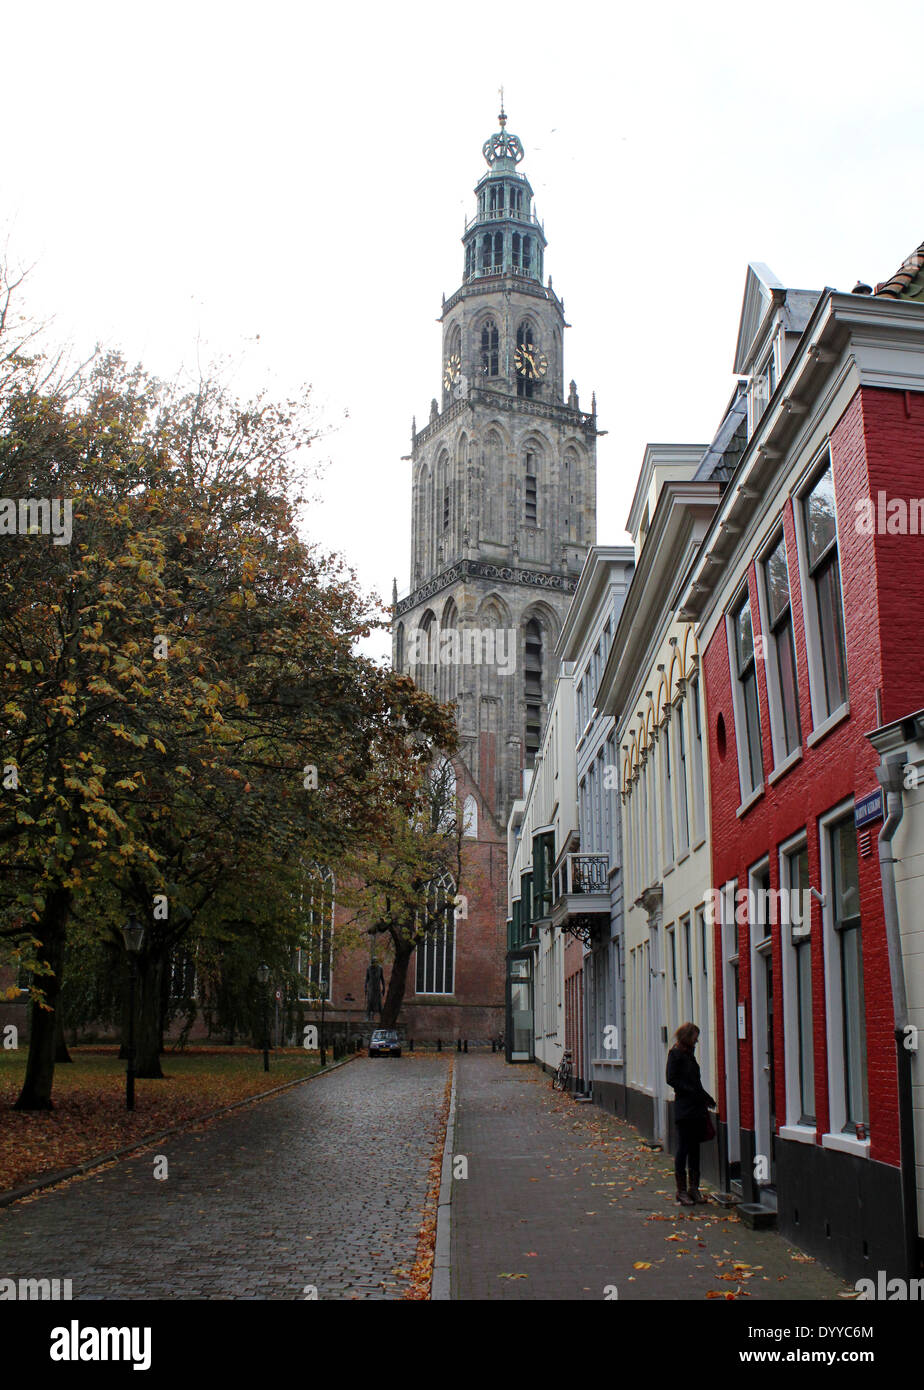 Martinikerhof in the old medieval center of  Groningen, The Netherlands with Martini church and Martinitoren tower Stock Photo